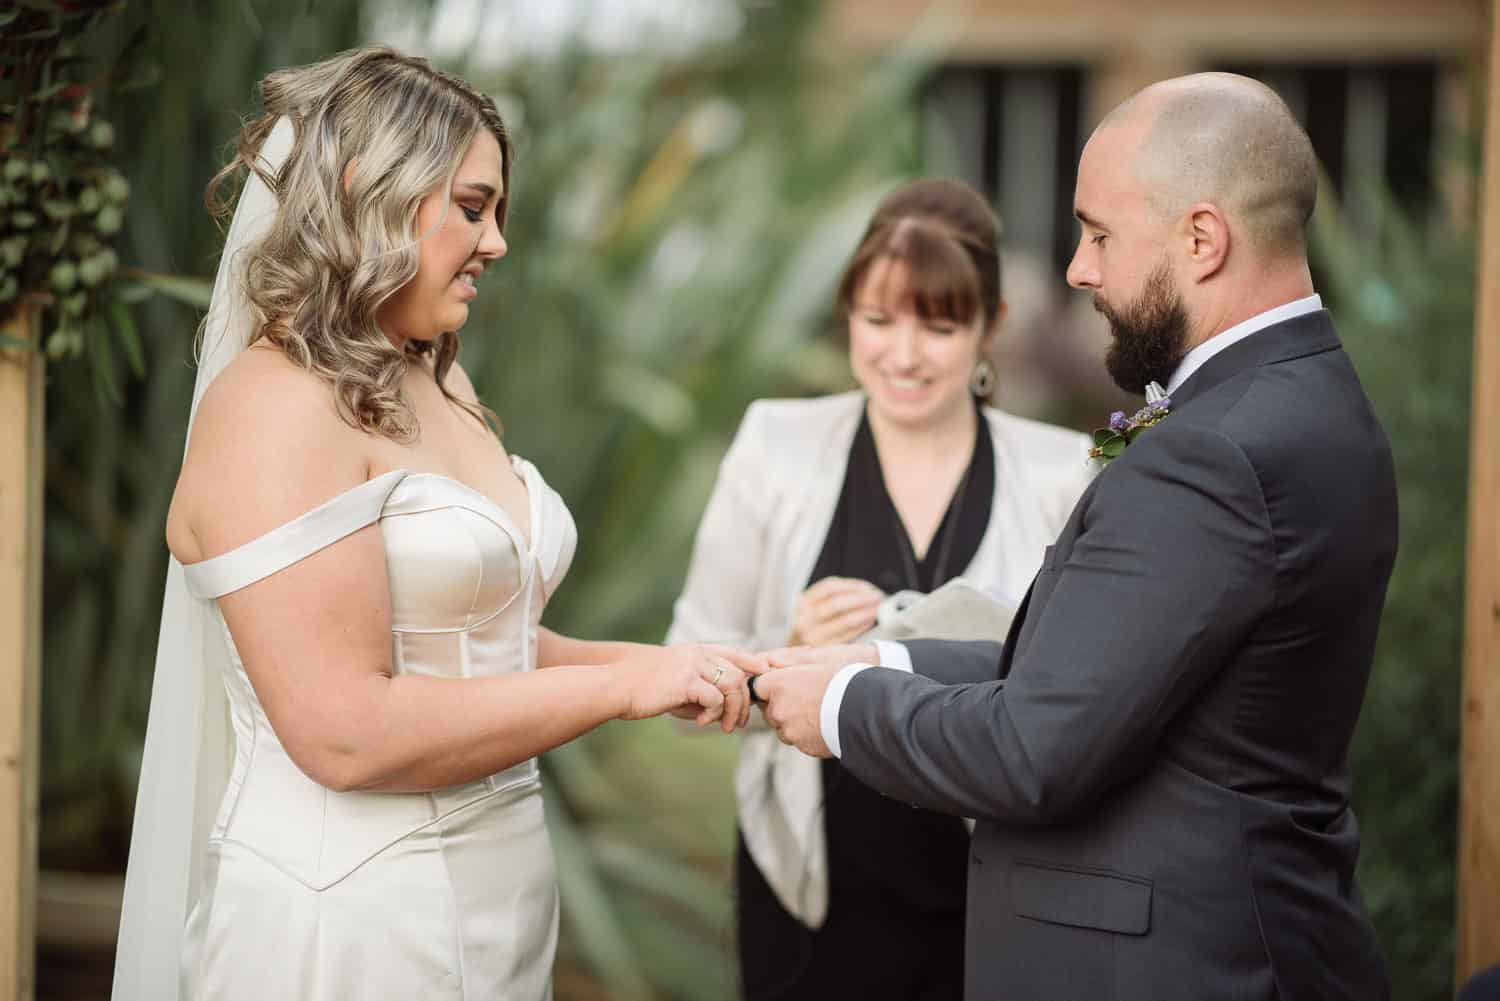 Exchanging wedding rings at a Warrnambool wedding